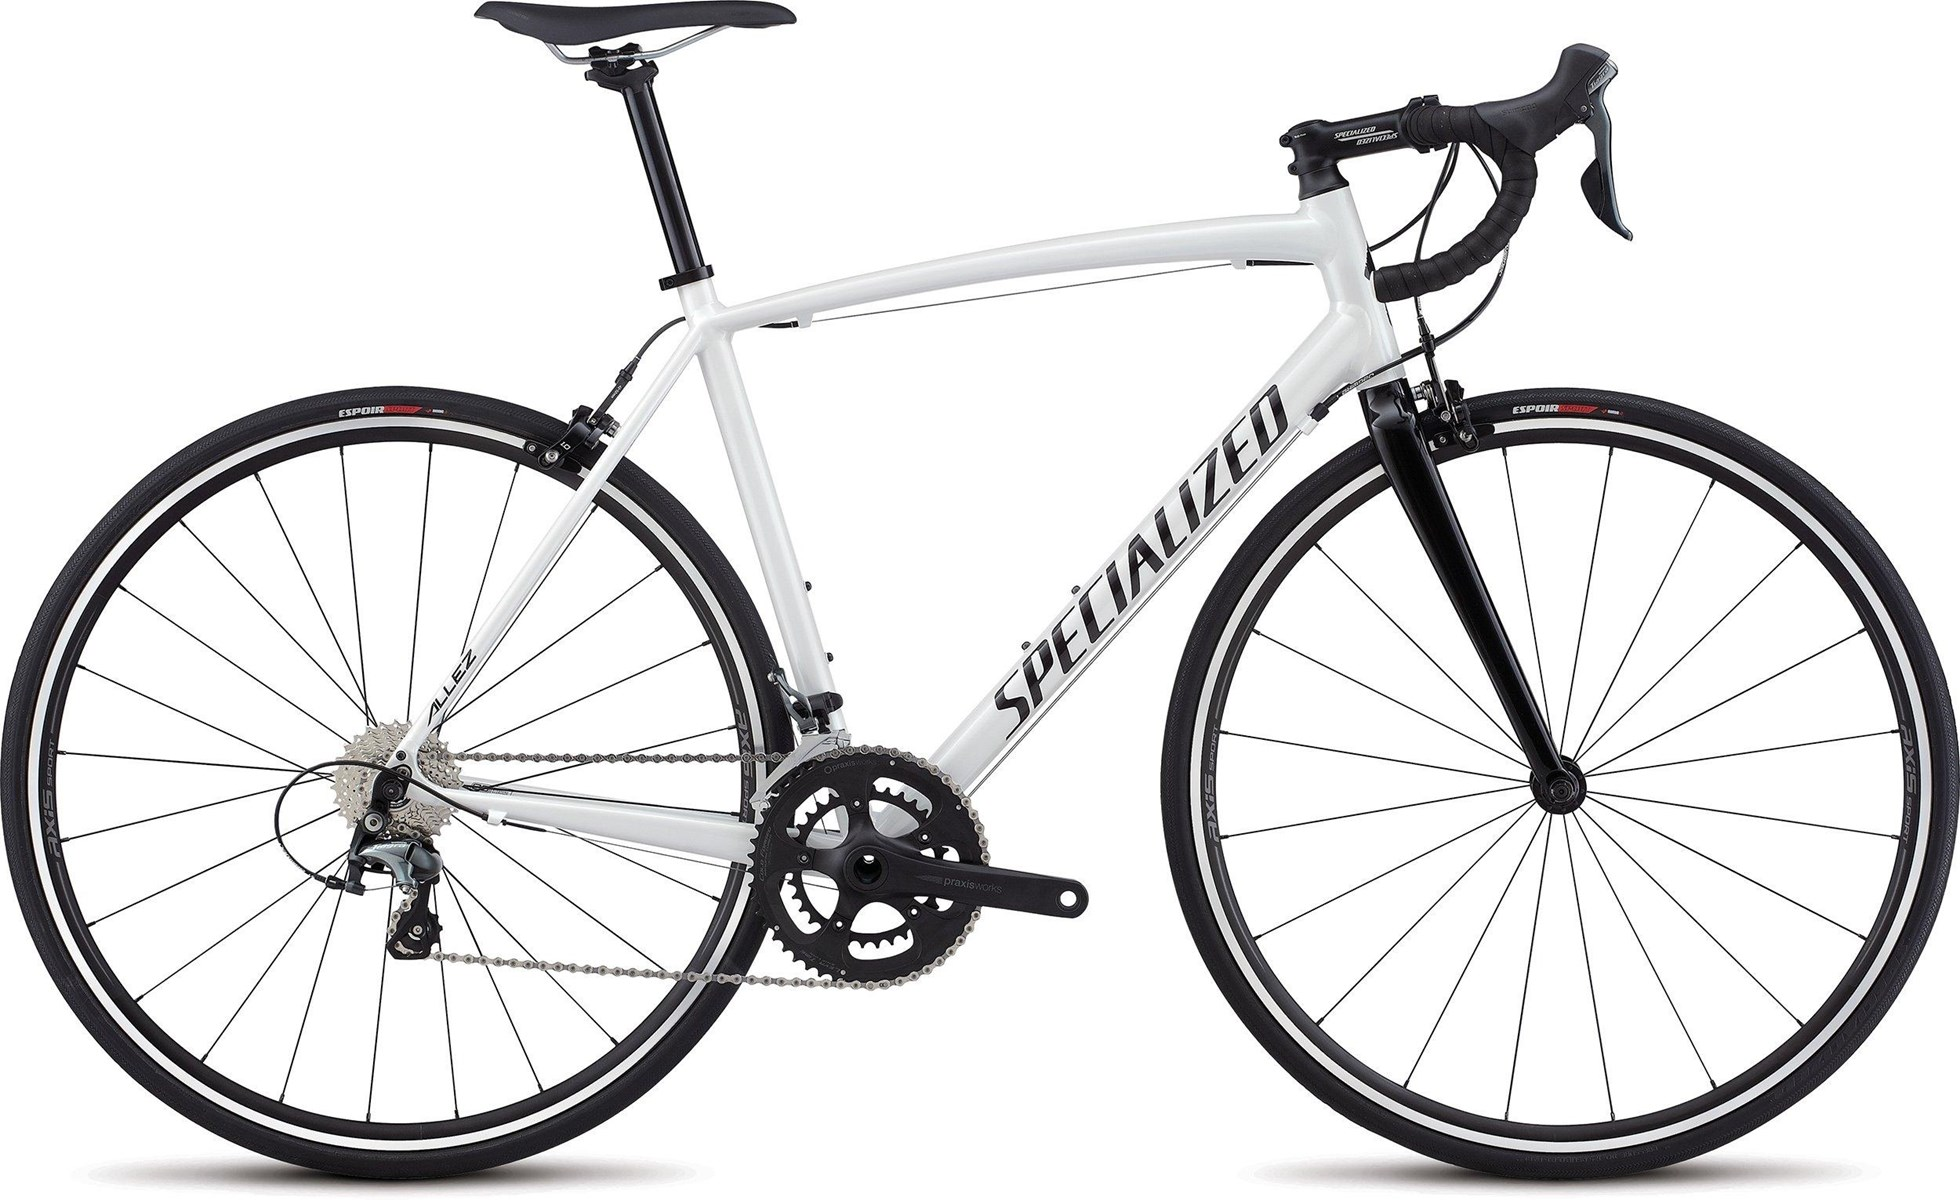 3e305ddd65b Specialized Allez E5 Elite. 0 (Be the first to add a review!)